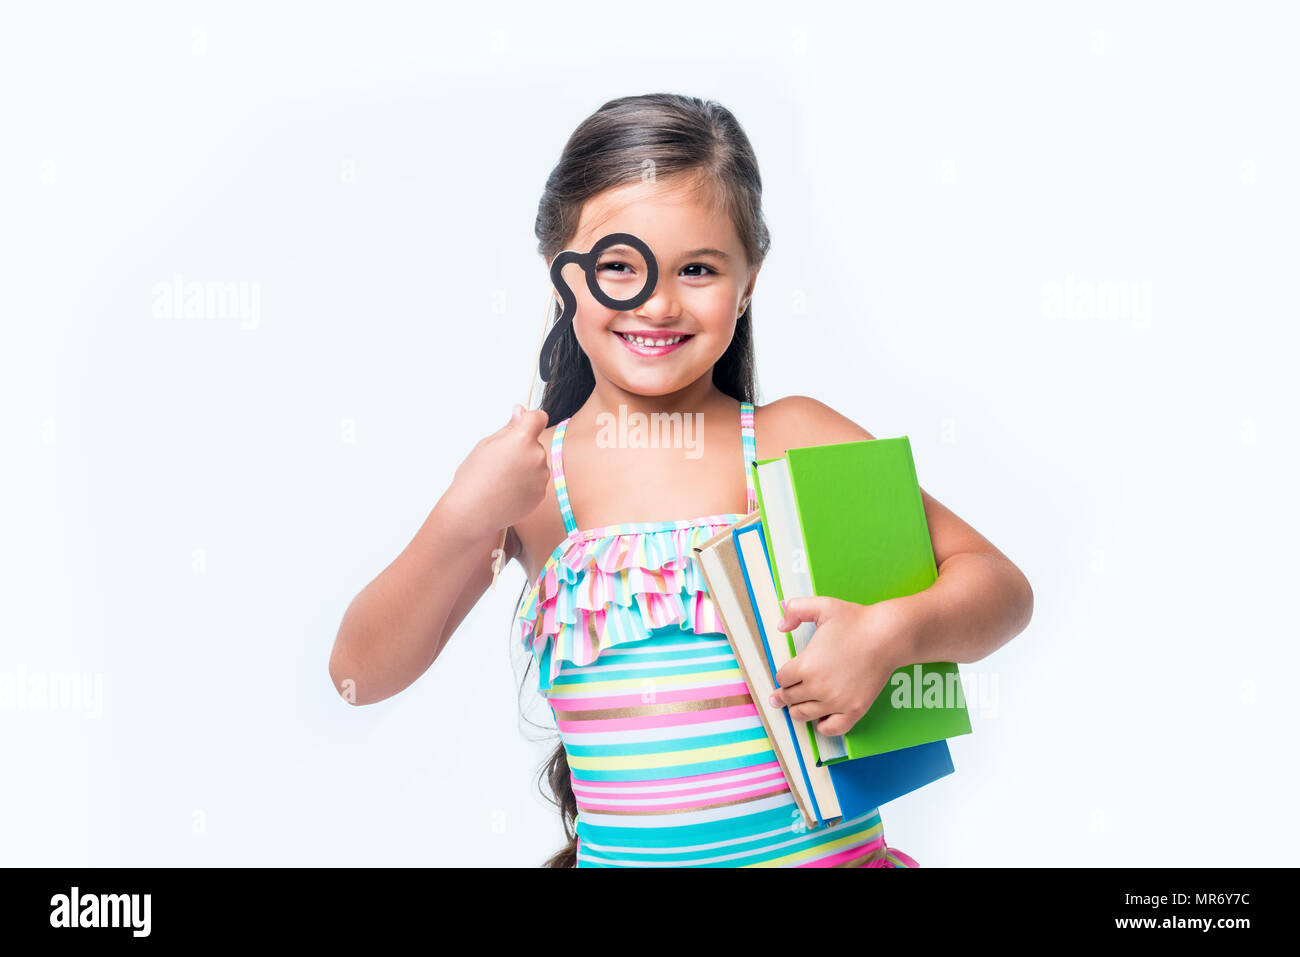 fe5ad7183c adorable happy little girl with books and party stick smiling at camera  isolated on white